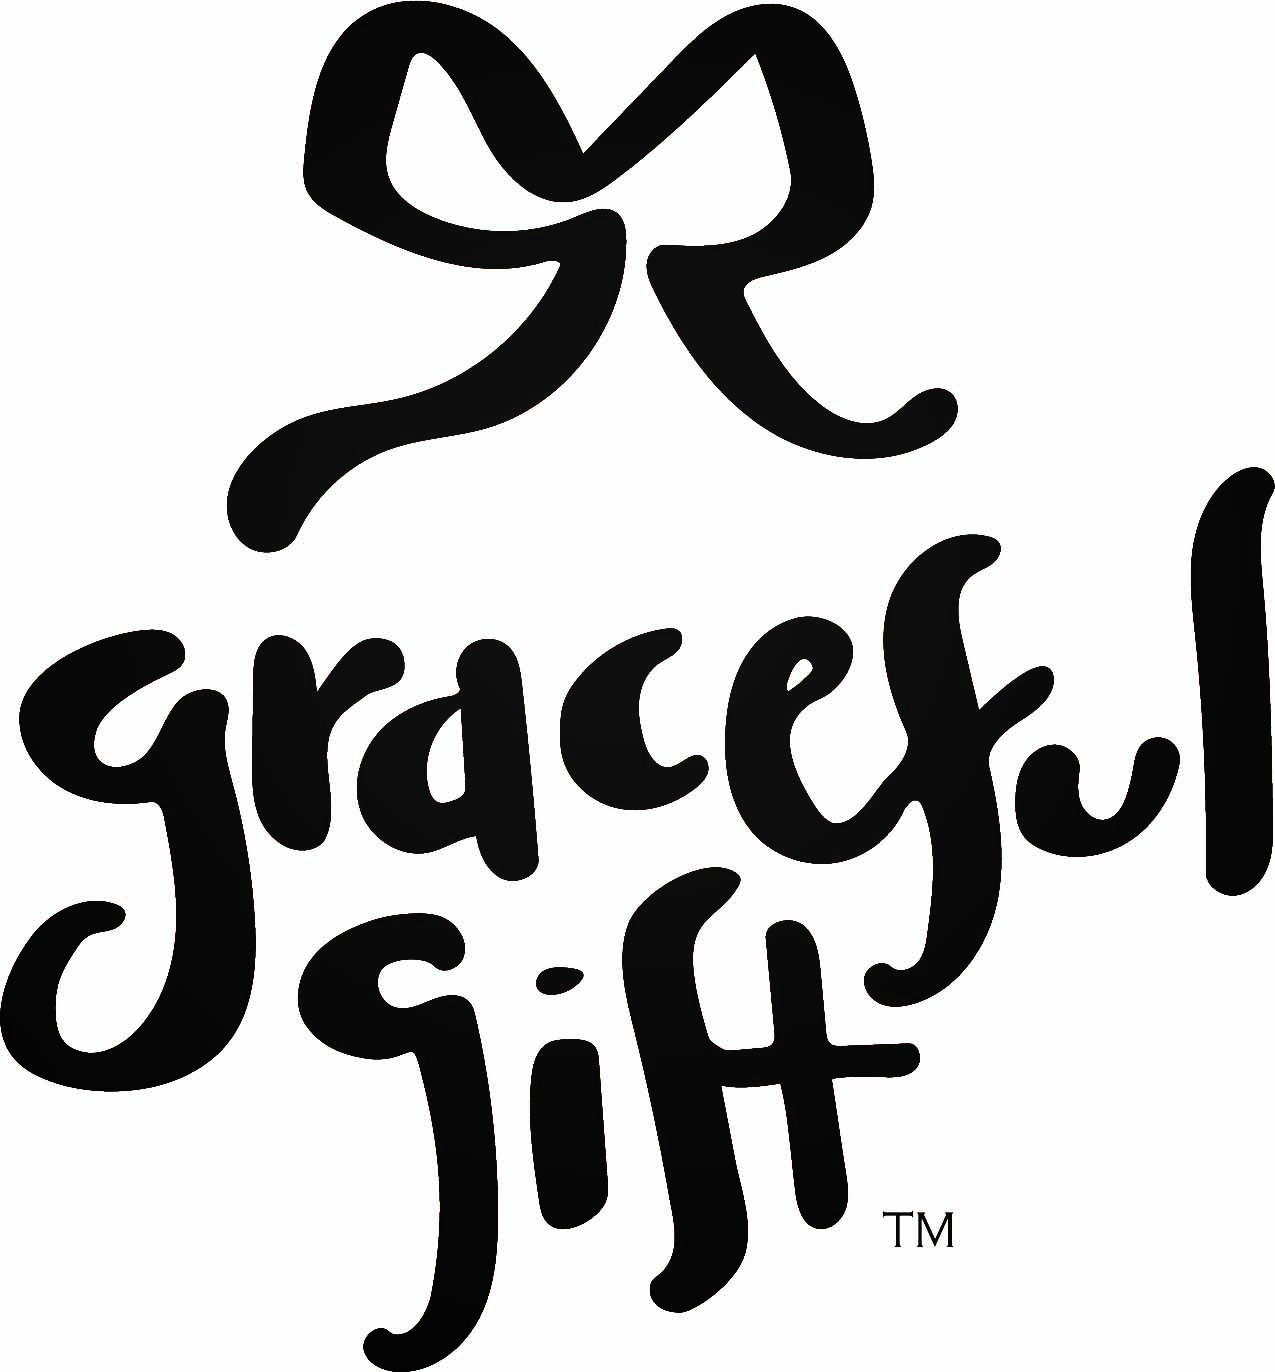 Graceful Gift Foundation